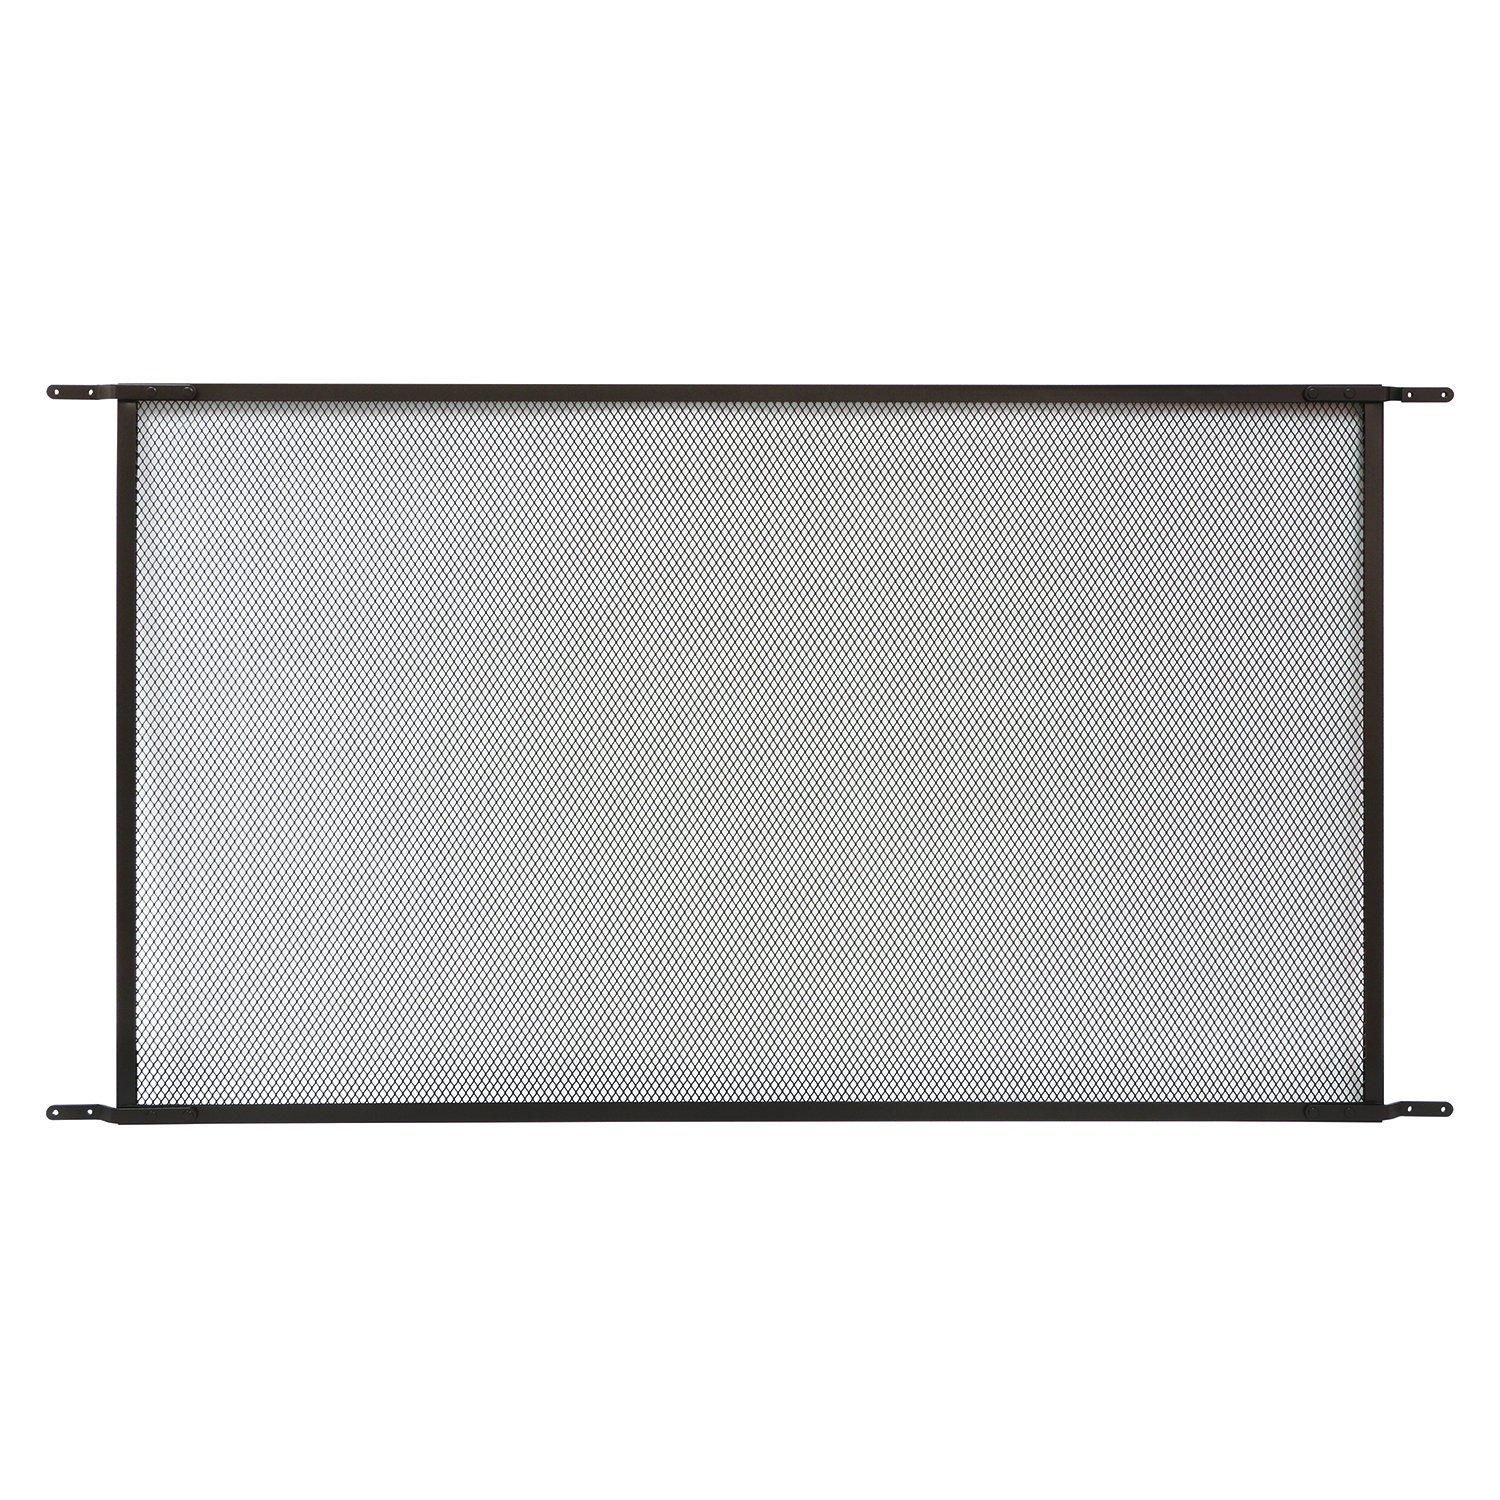 Prime-Line Products PL 15942 Patio Sliding Screen Door Grille, Fits 48 In. Doors, Aluminum Construction, Bronze by Prime-Line Products